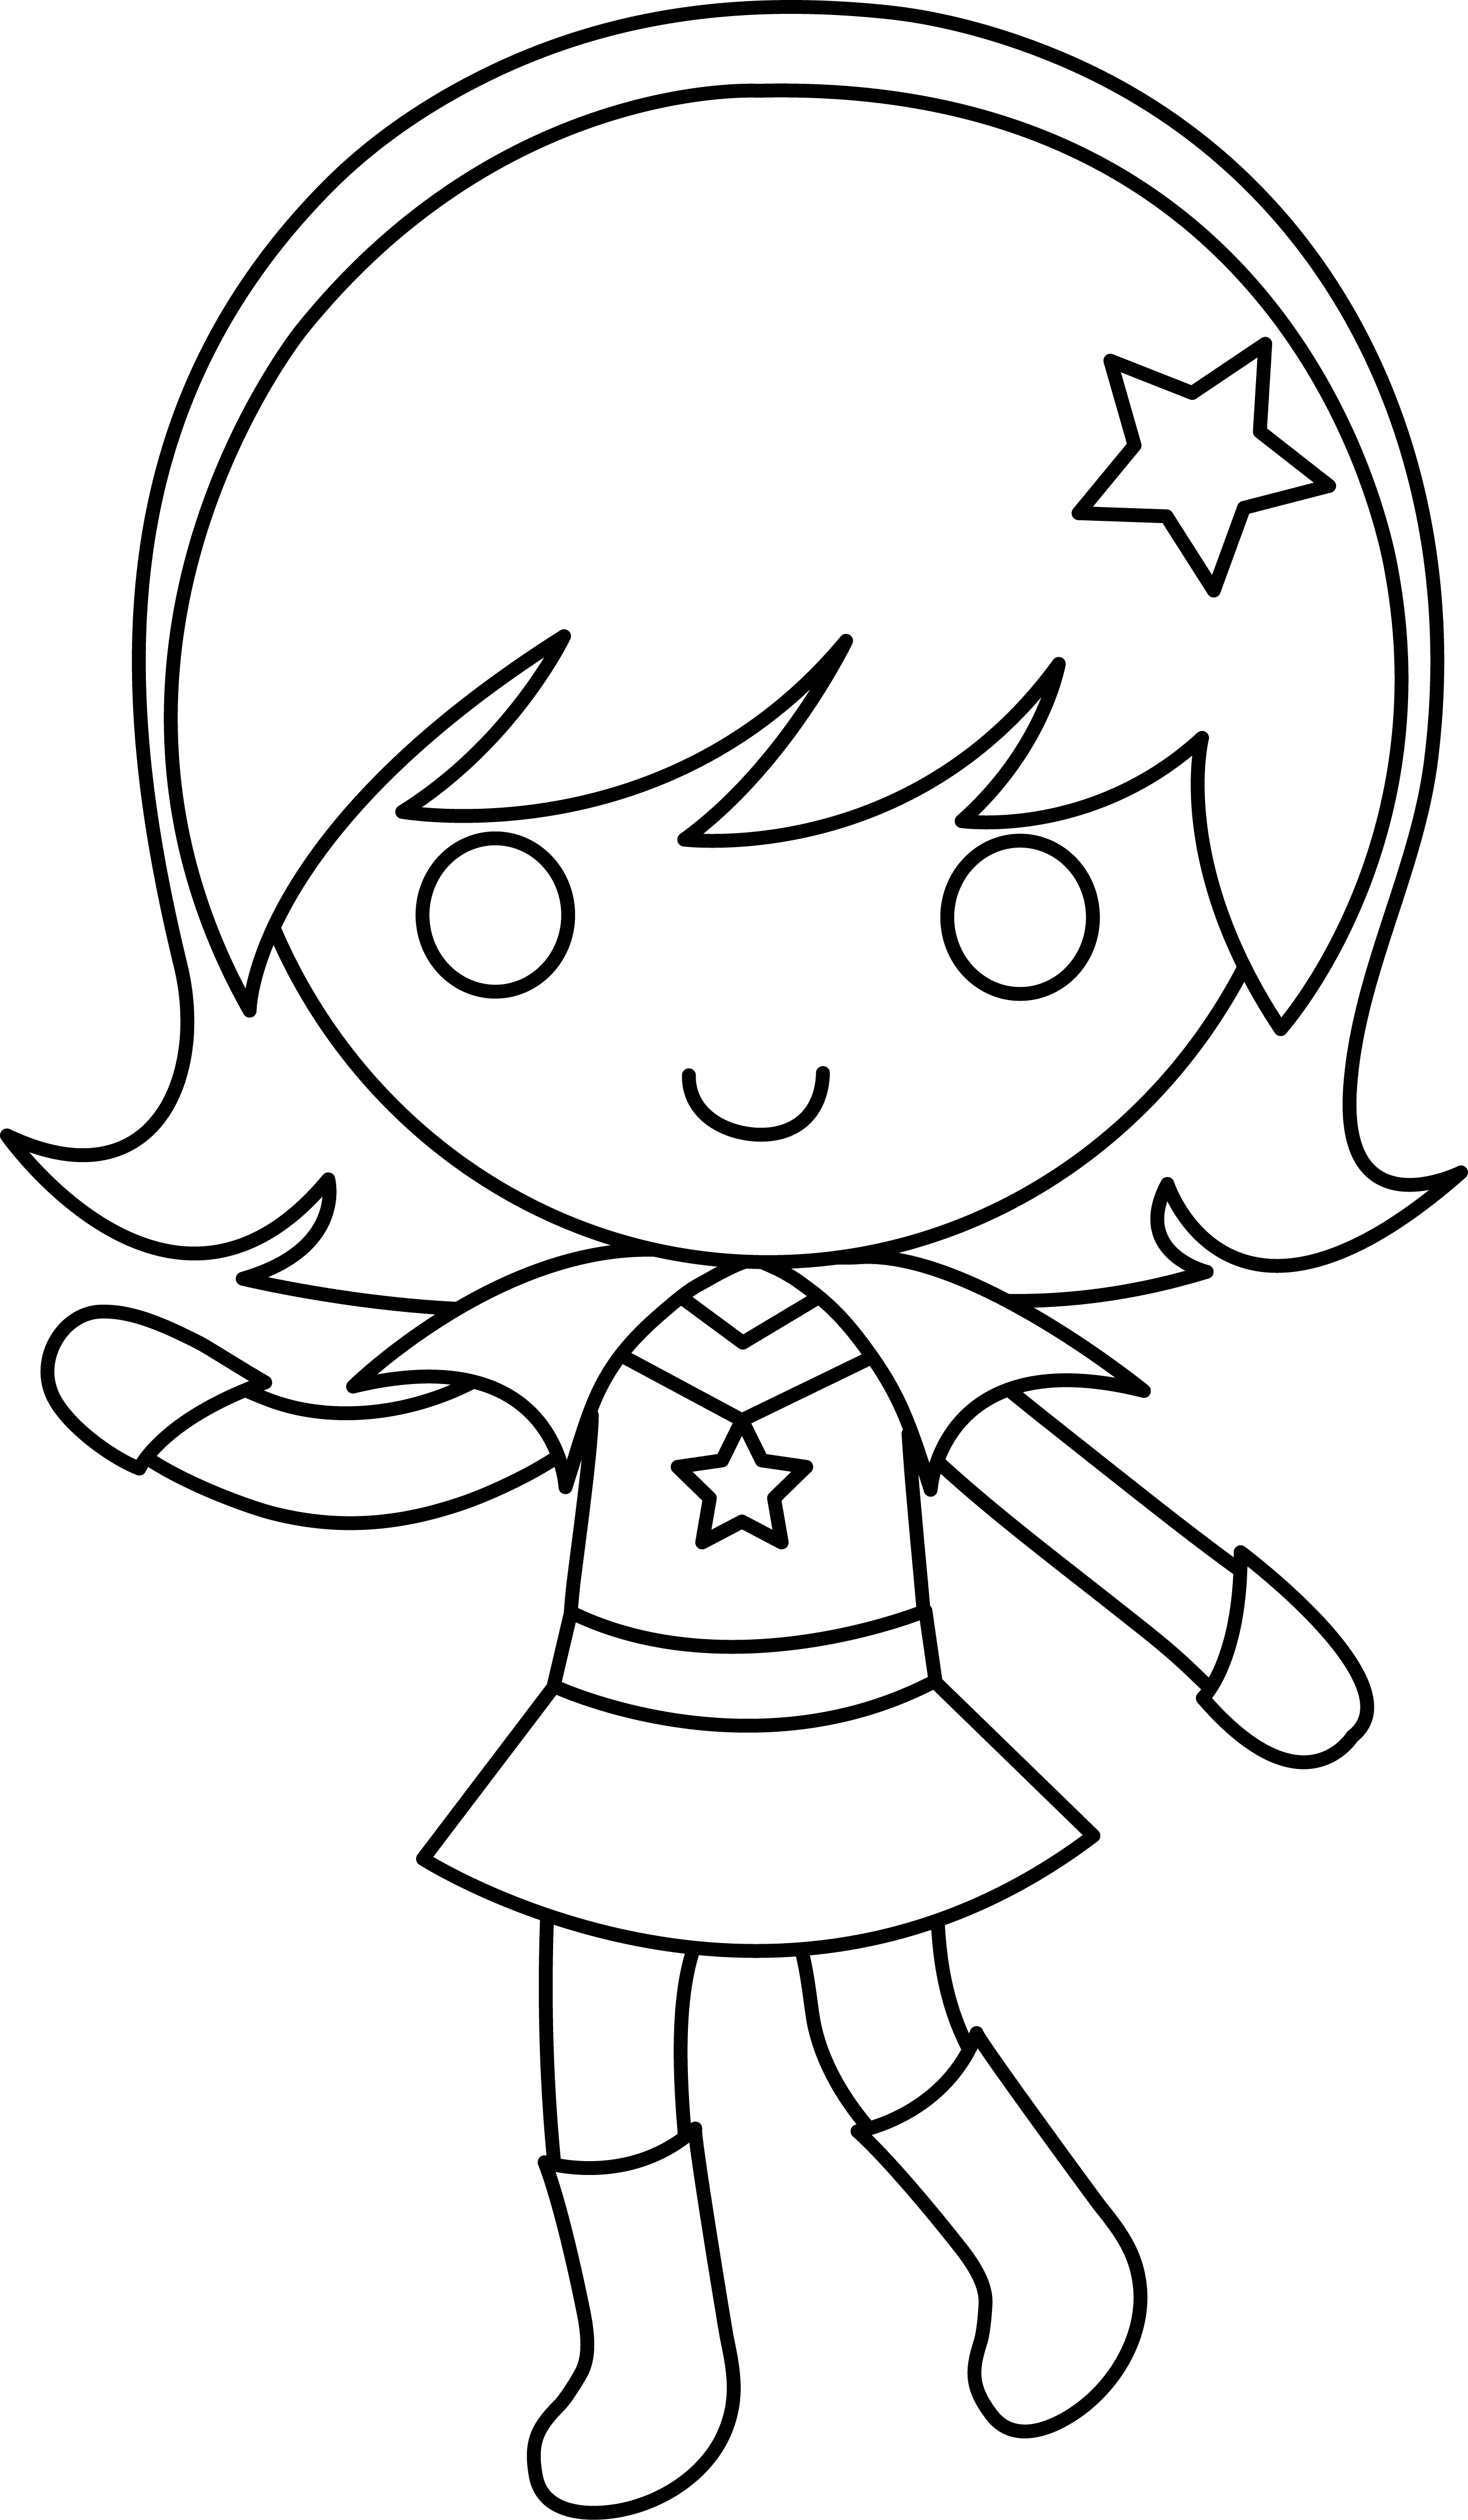 Girly clipart black and white, Girly black and white.